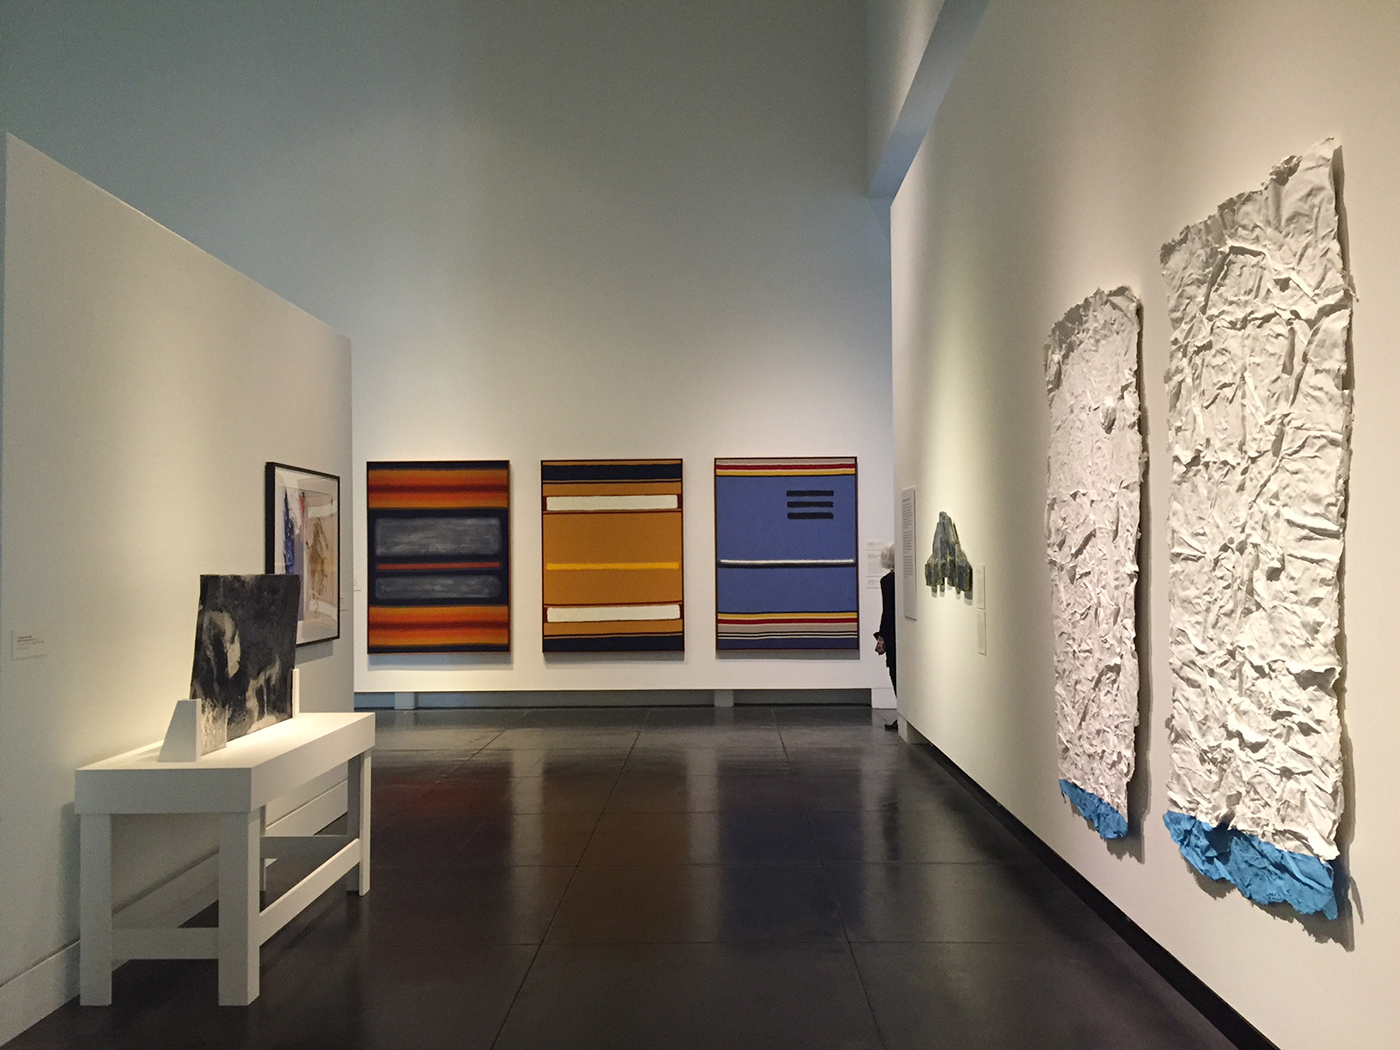 Installation view, 'NW Art Now' at the Tacoma Art Museum (photo by the author for Hyperallergic) (click to enlarge)